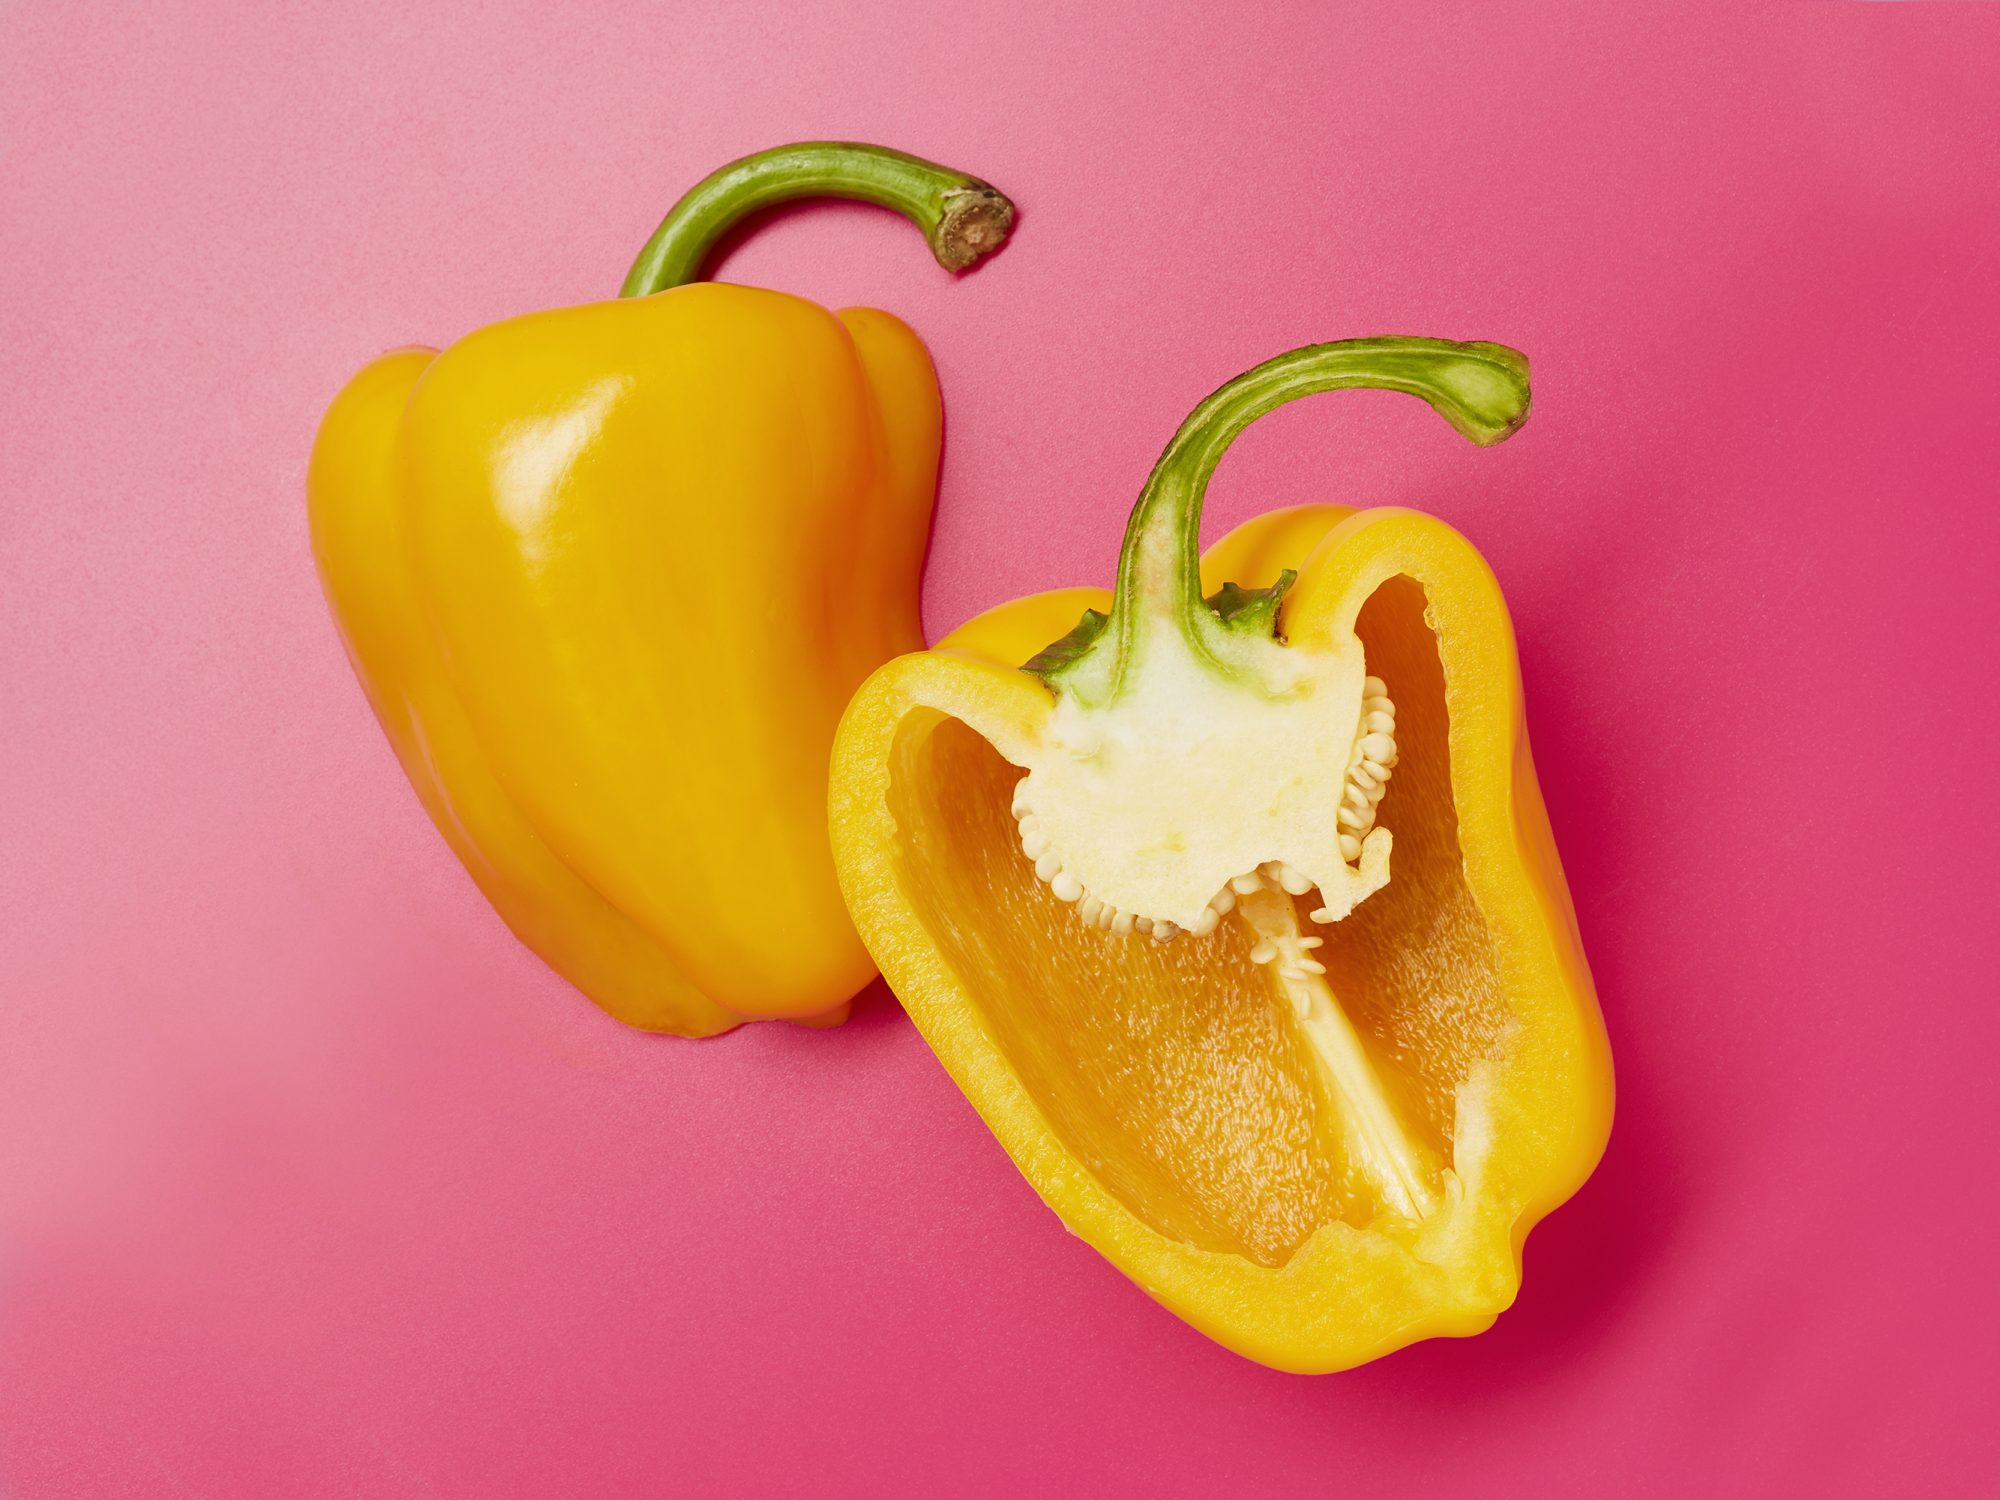 Still life of sliced yellow bell peppers on pink background